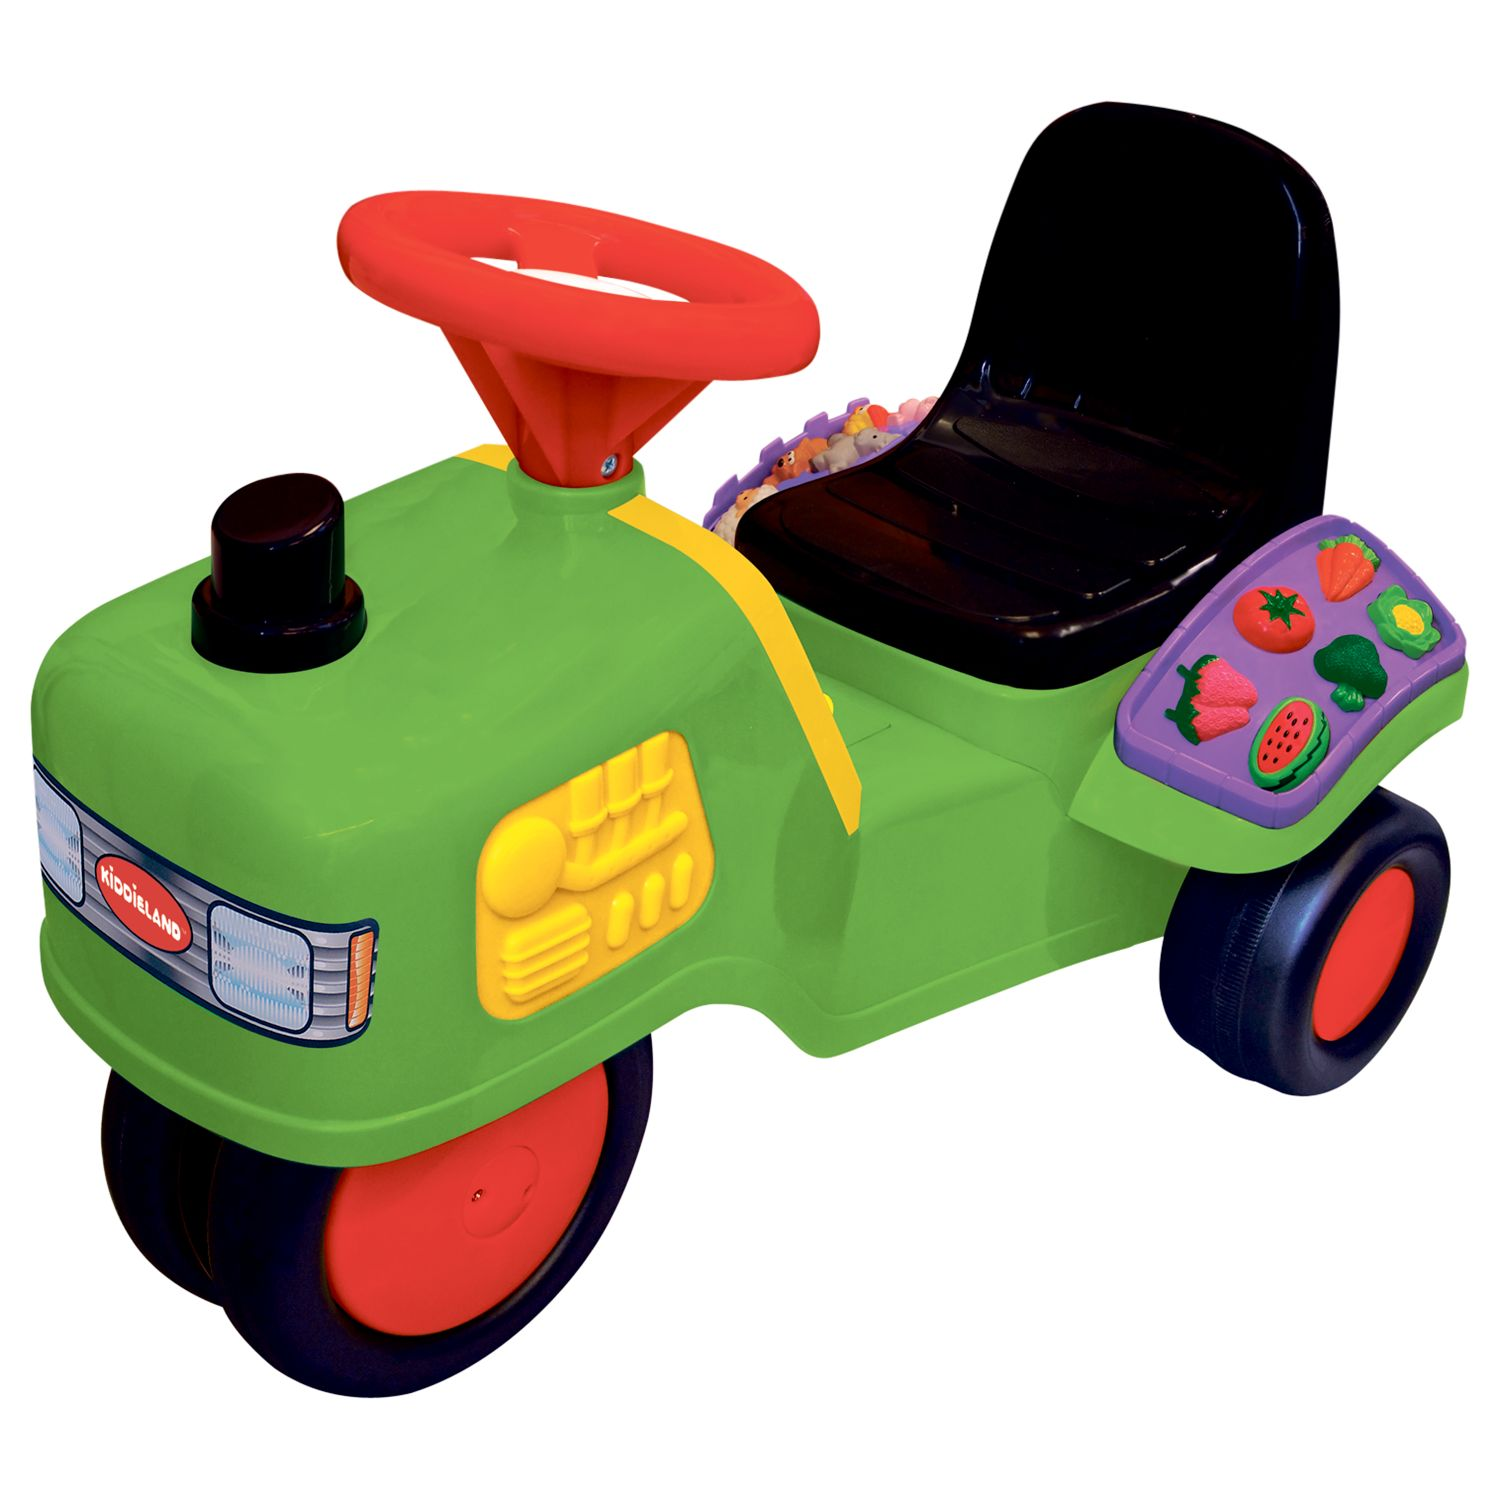 Tractor Ride-on Toy